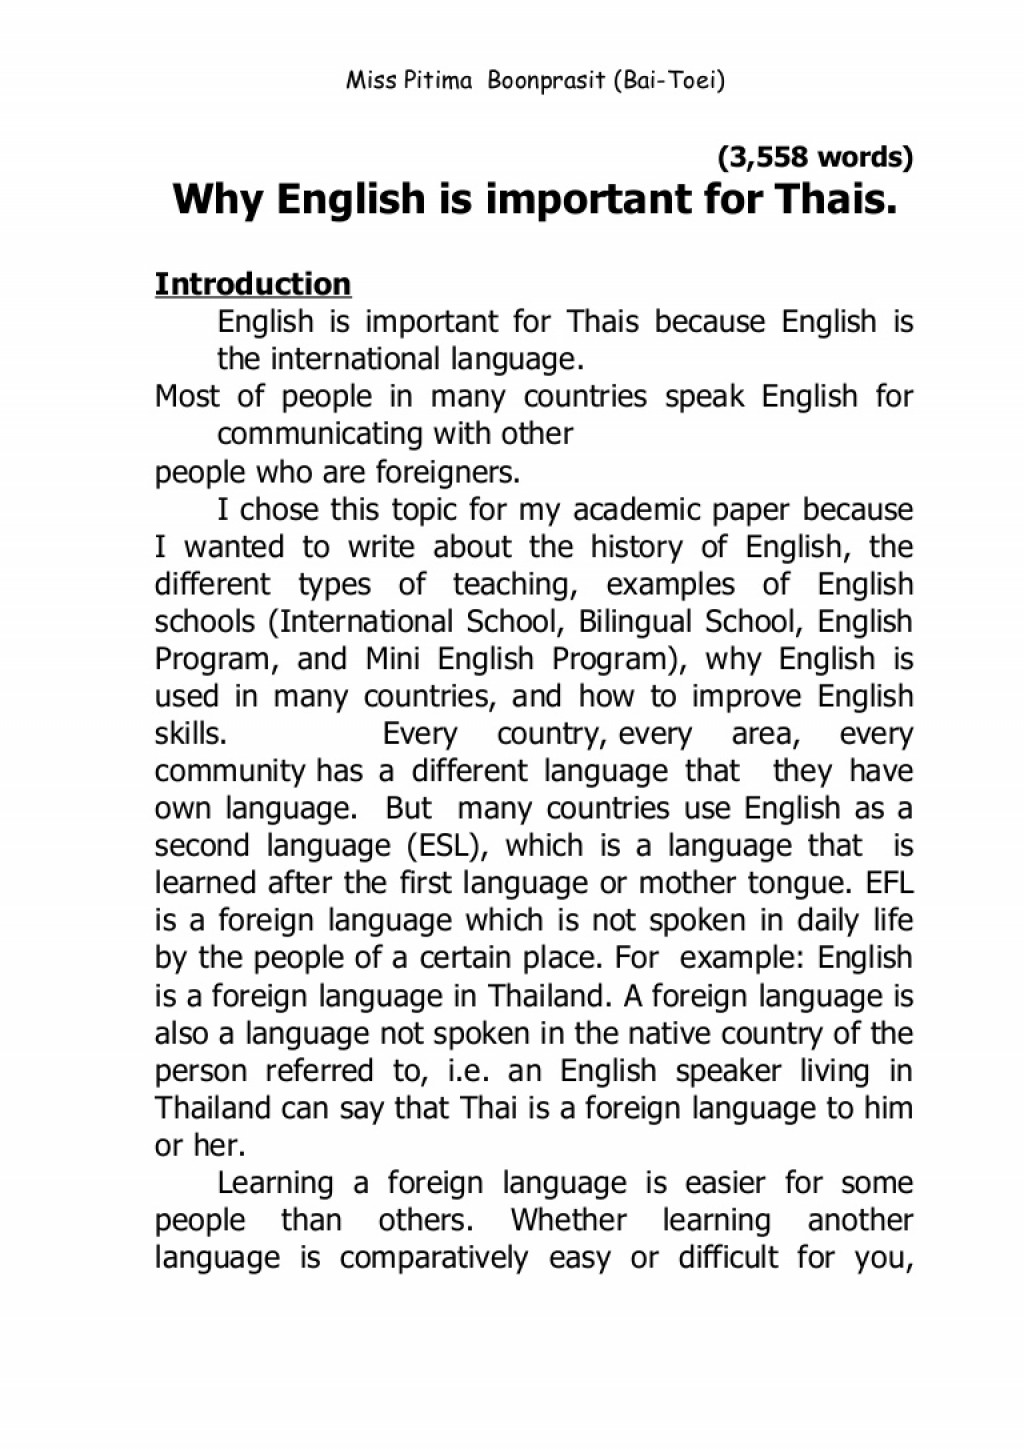 002 Essay Example Finalpaper Phpapp01 Thumbnail Importance Of Sensational Writing In English Education Skills To Students Large